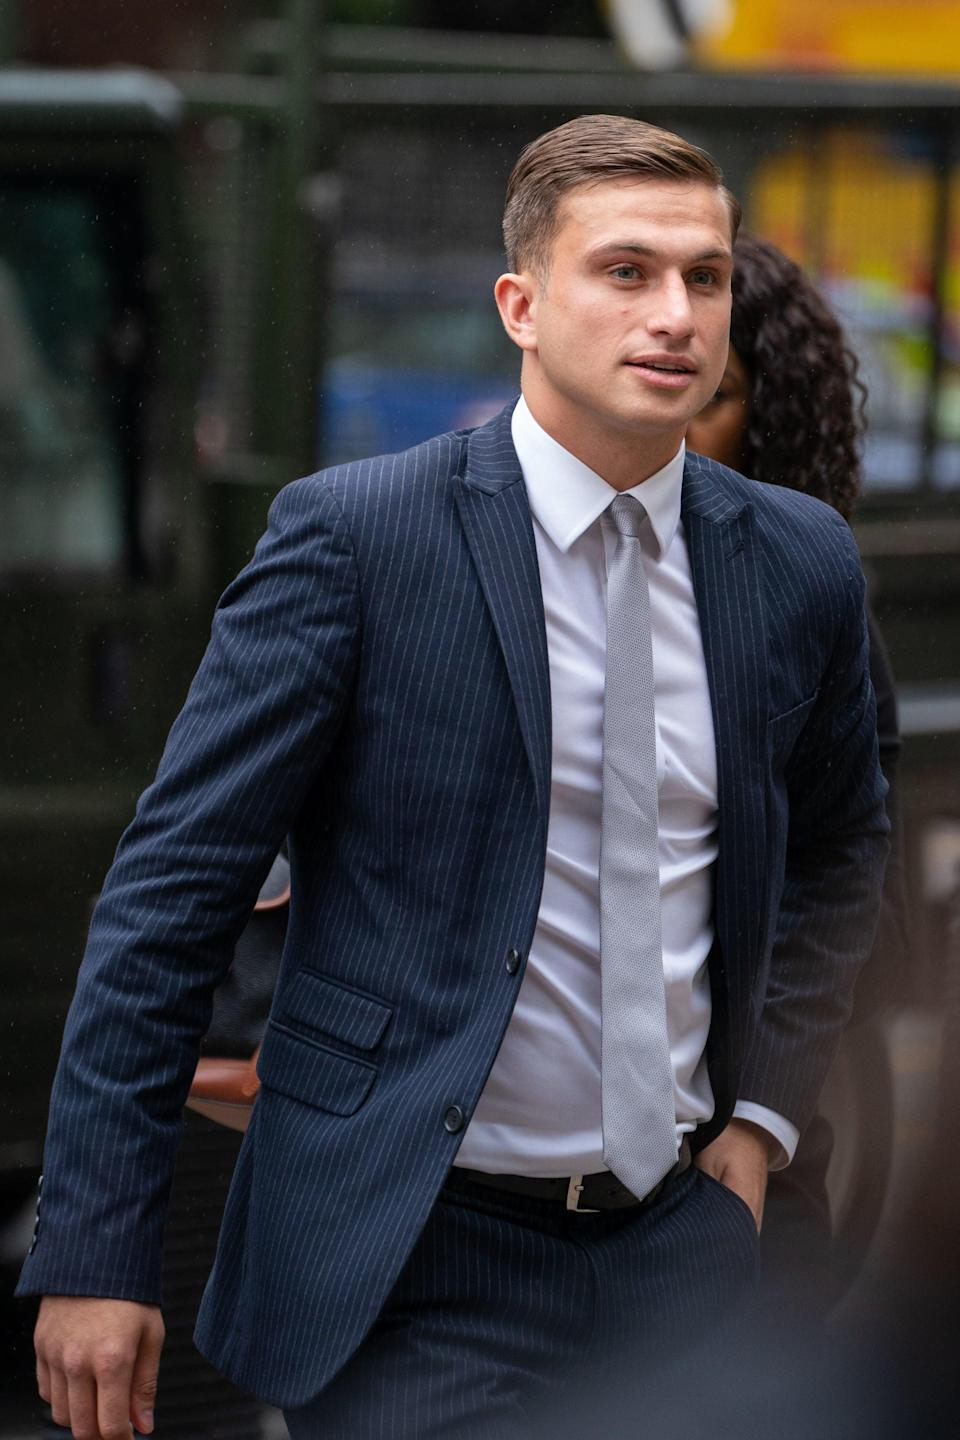 Lewis Hughes, 24, has admitted assaulting England's chief medical officer Professor Chris Whitty (Dominic Lipinski/PA) (PA Wire)